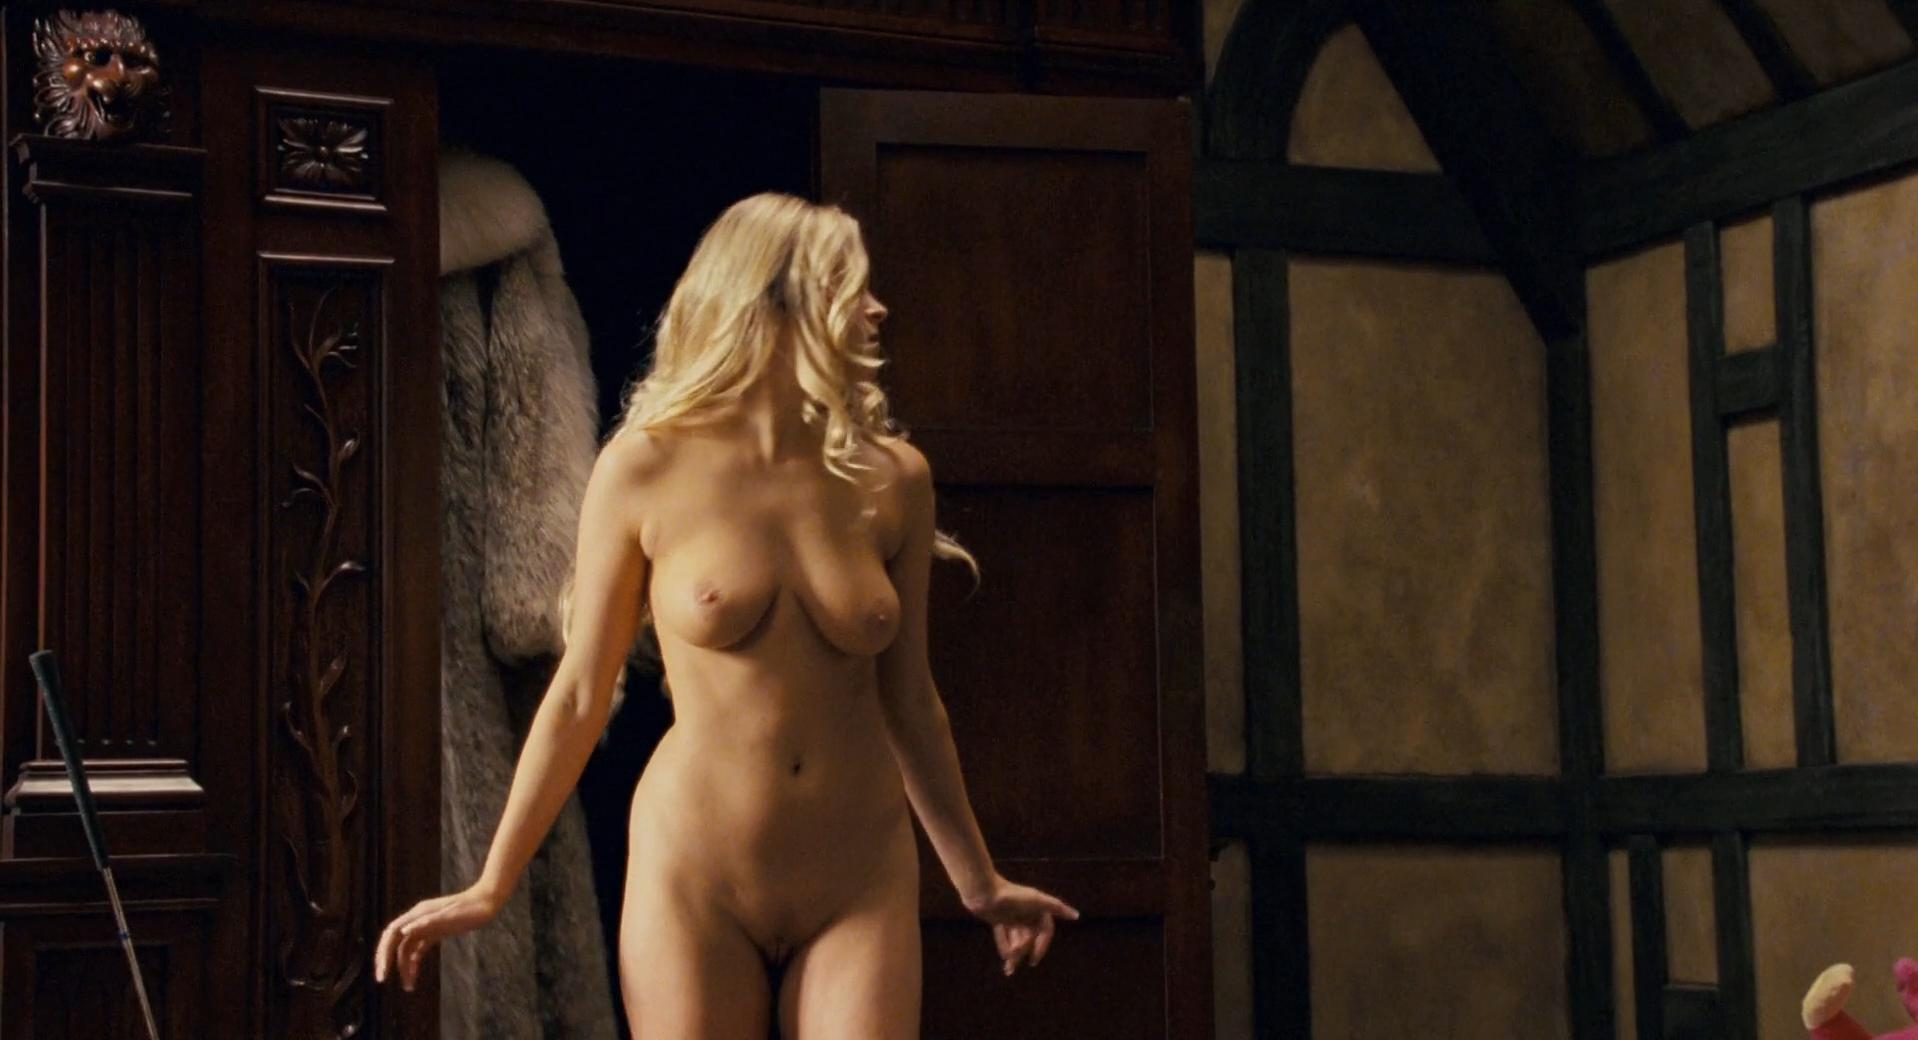 average looking women naked pictures